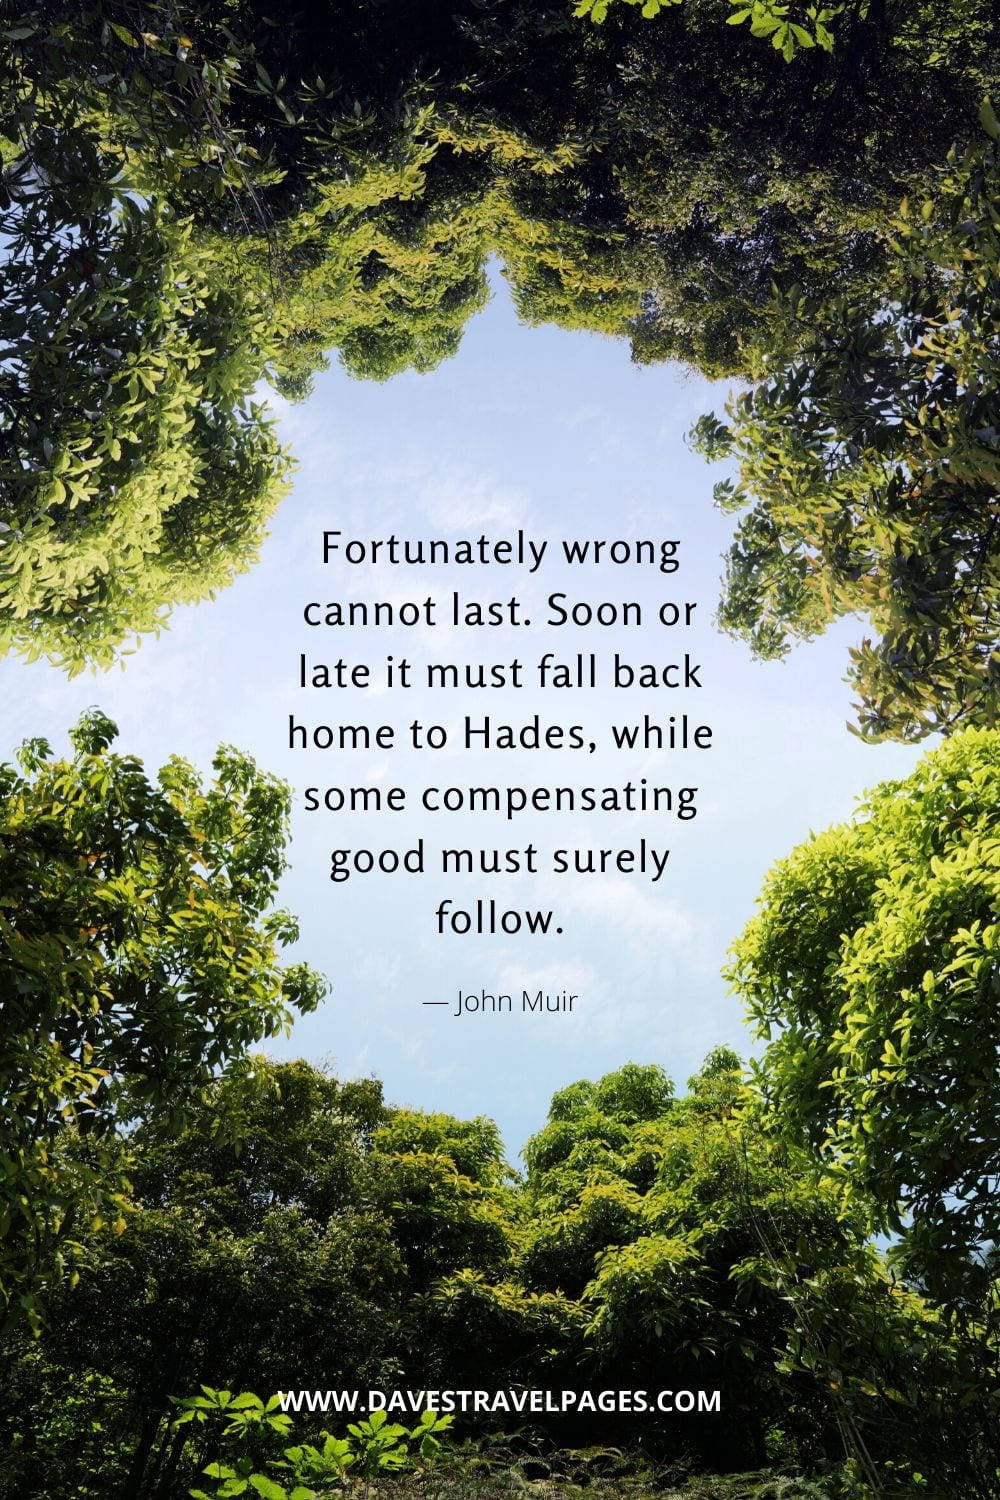 """""""Fortunately wrong cannot last. Soon or late it must fall back home to Hades, while some compensating good must surely follow.""""― John Muir"""